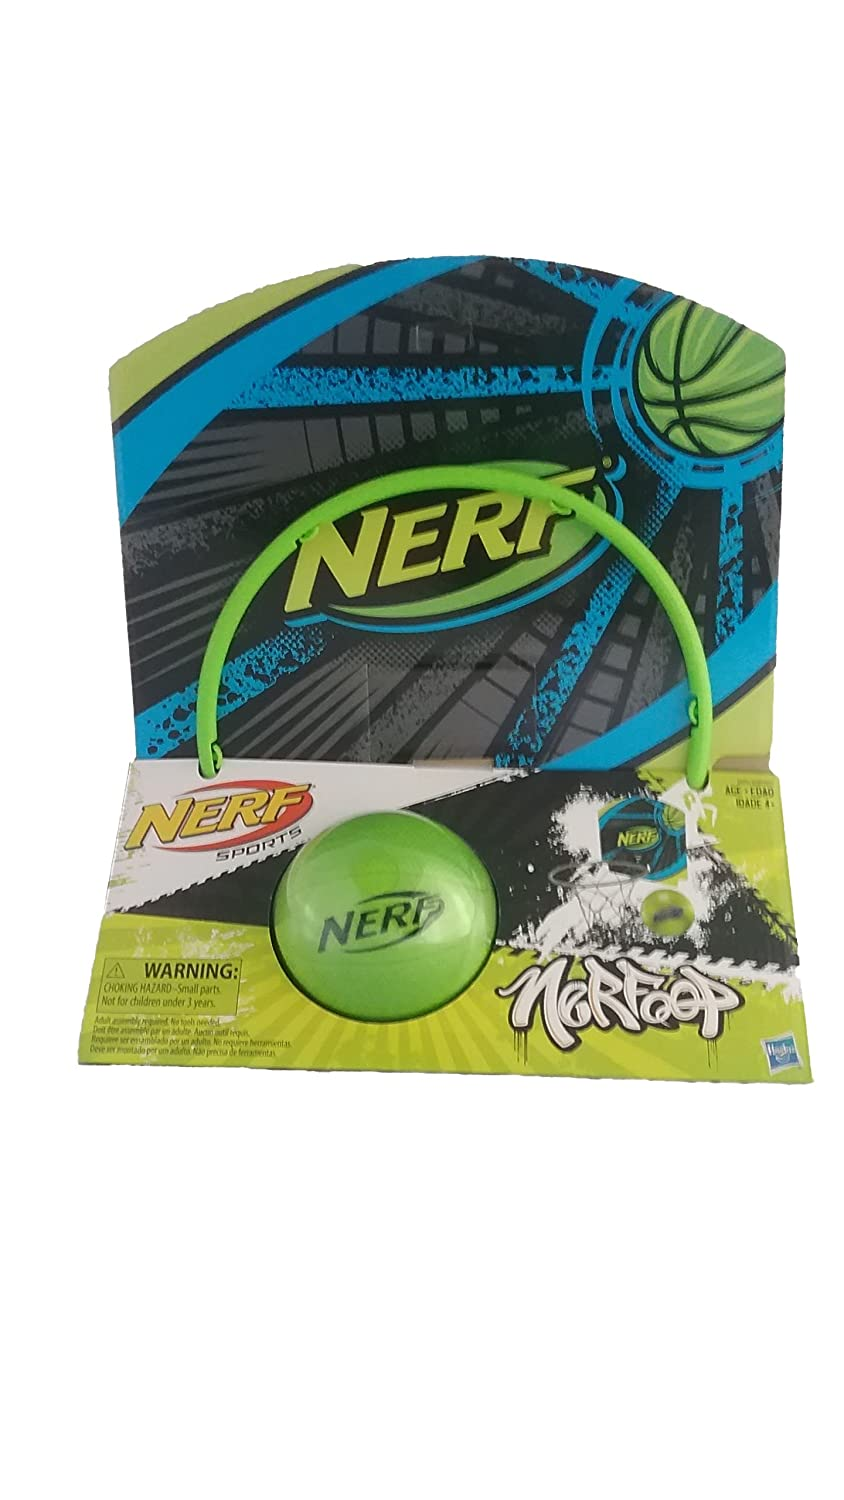 Son Will Get A Lot Of Fun And Use Out This Cool Toy Basketball Hoop Be Nice Gift For An Older Boy Who Loves Sports